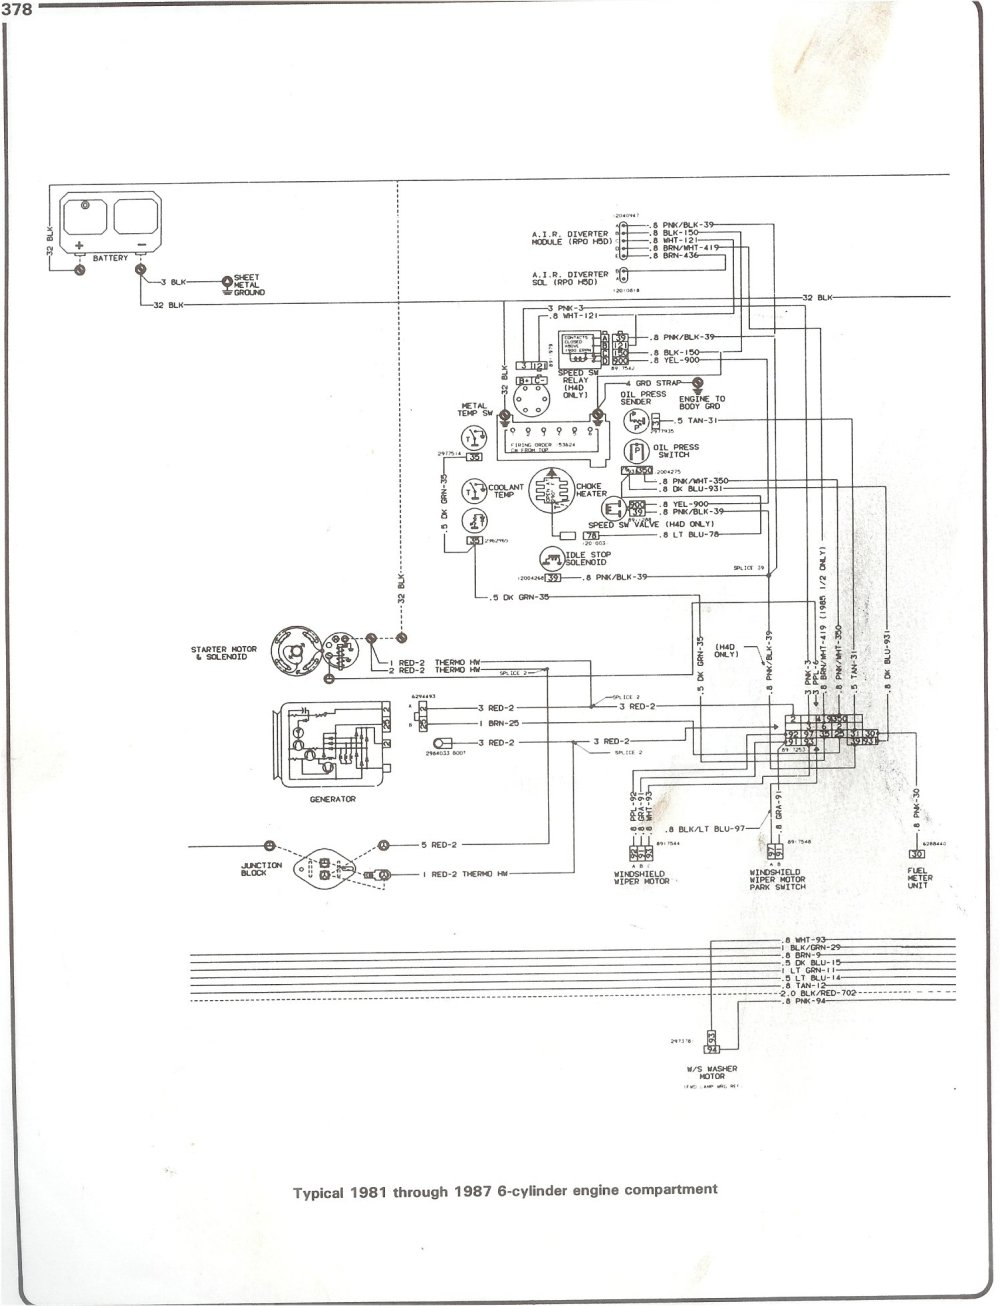 medium resolution of complete 73 87 wiring diagrams81 87 i6 engine compartment